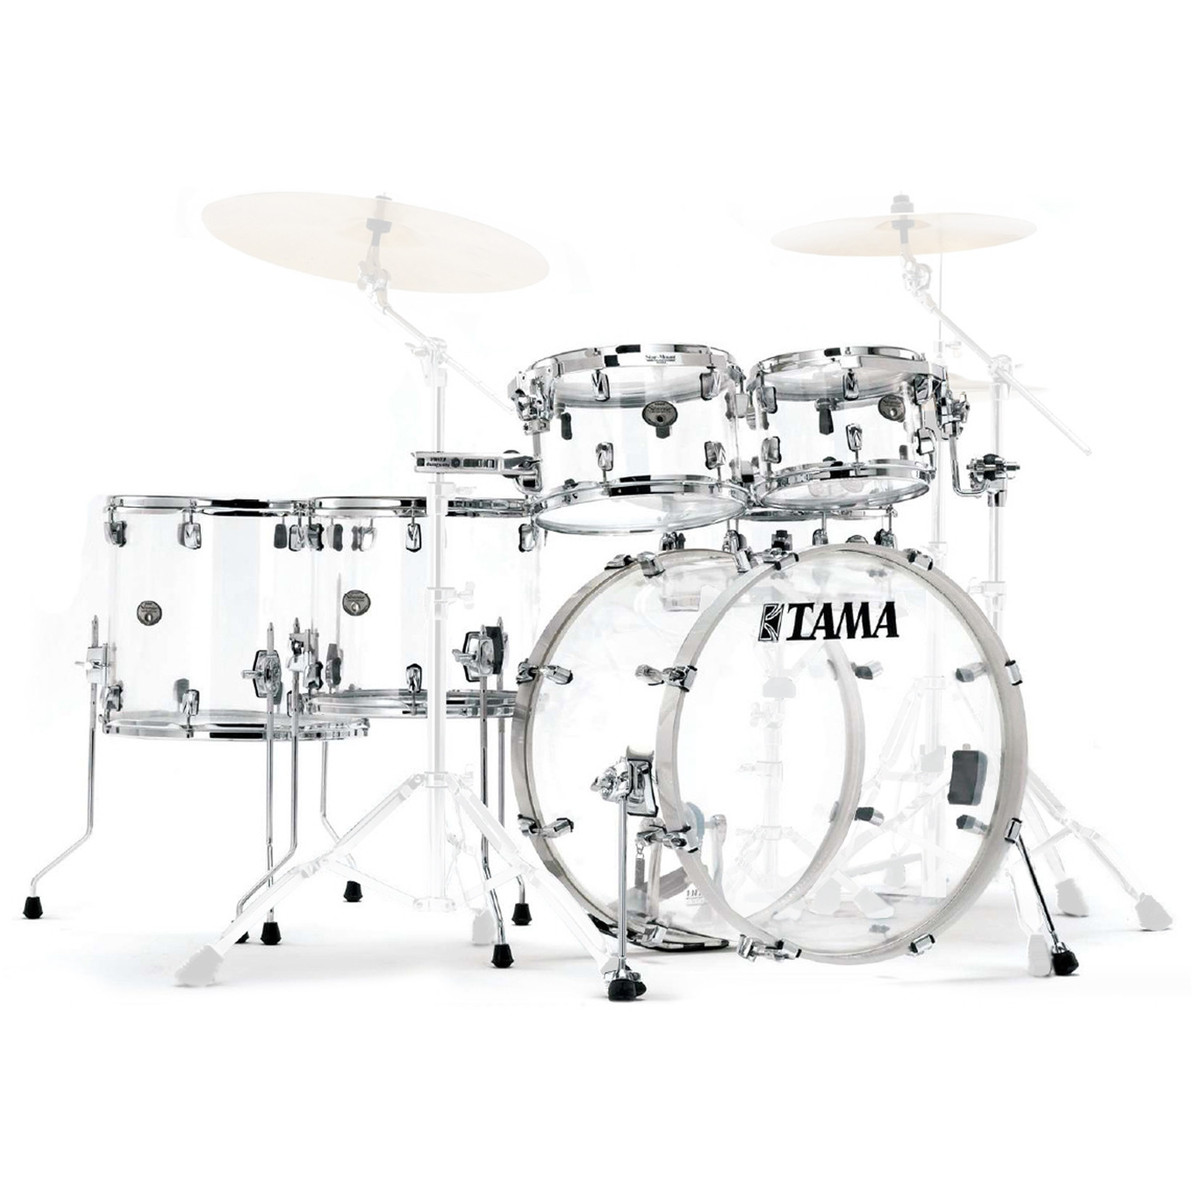 Tama Silverstar Mirage : tama silverstar mirage crystal ice ltd edition 6pc acrylic shell pack at ~ Russianpoet.info Haus und Dekorationen